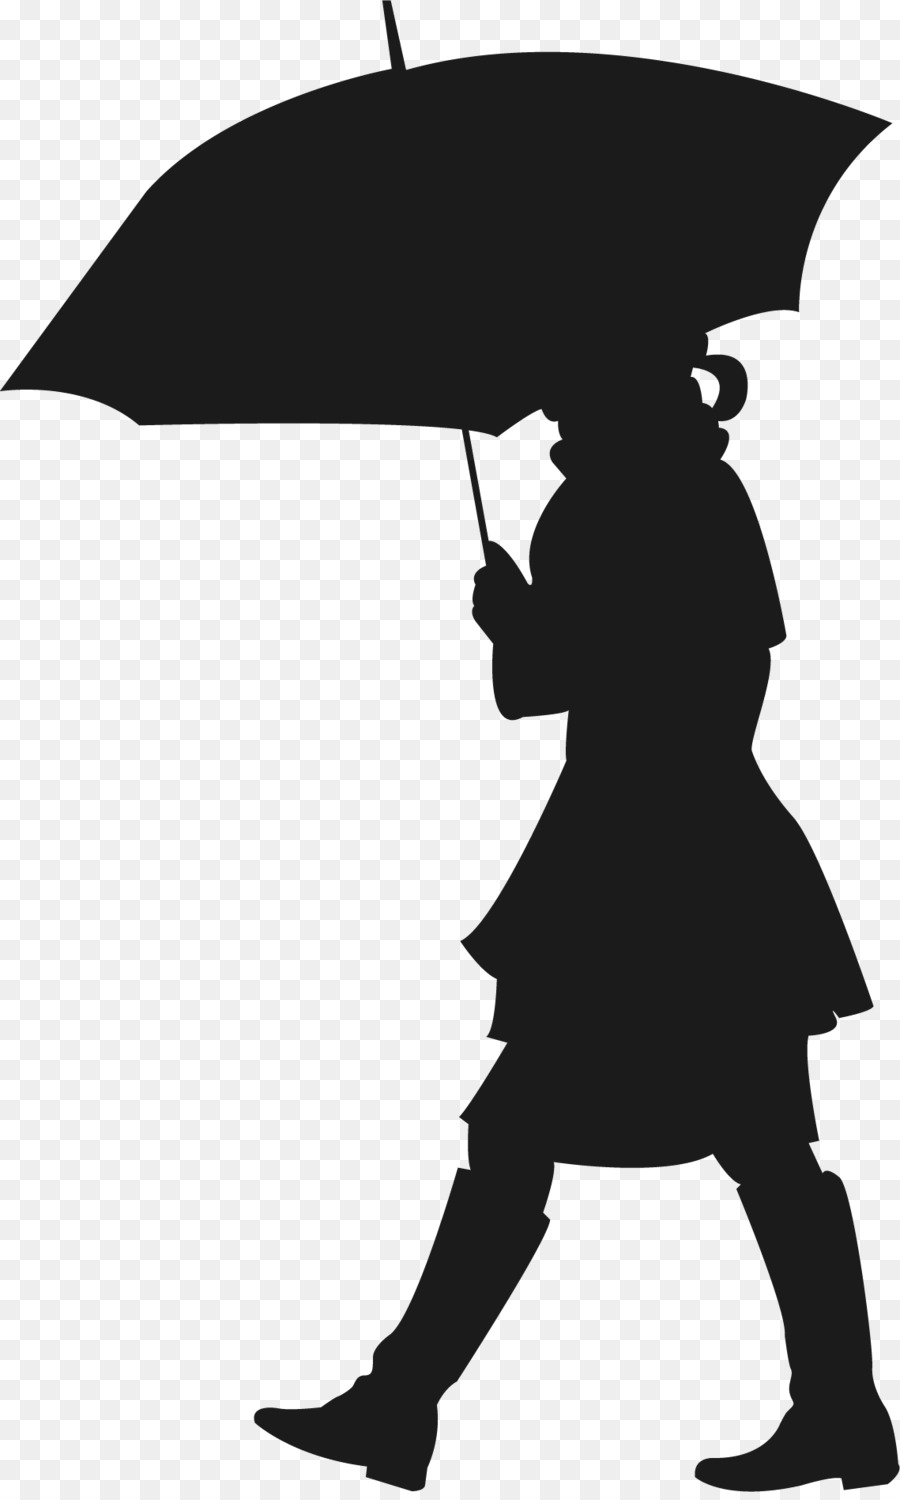 900x1500 The Umbrellas Silhouette Wall Decal Sticker